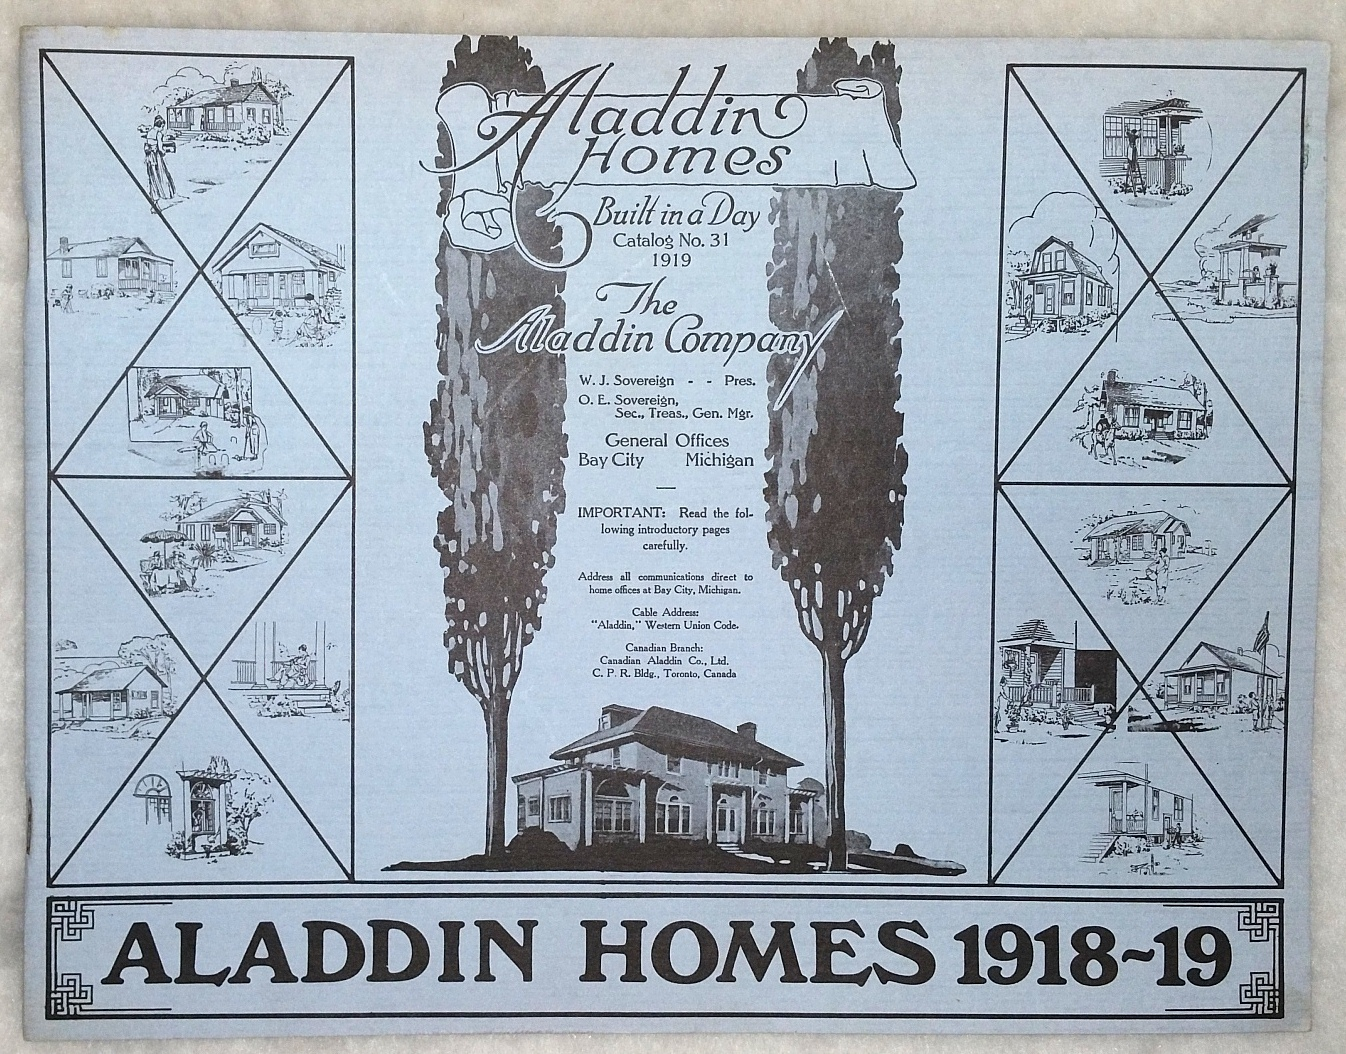 Image for Aladdin Homes 1918-19:  Aladdin Homes, Built in a Day, Catalog No. 31 1919